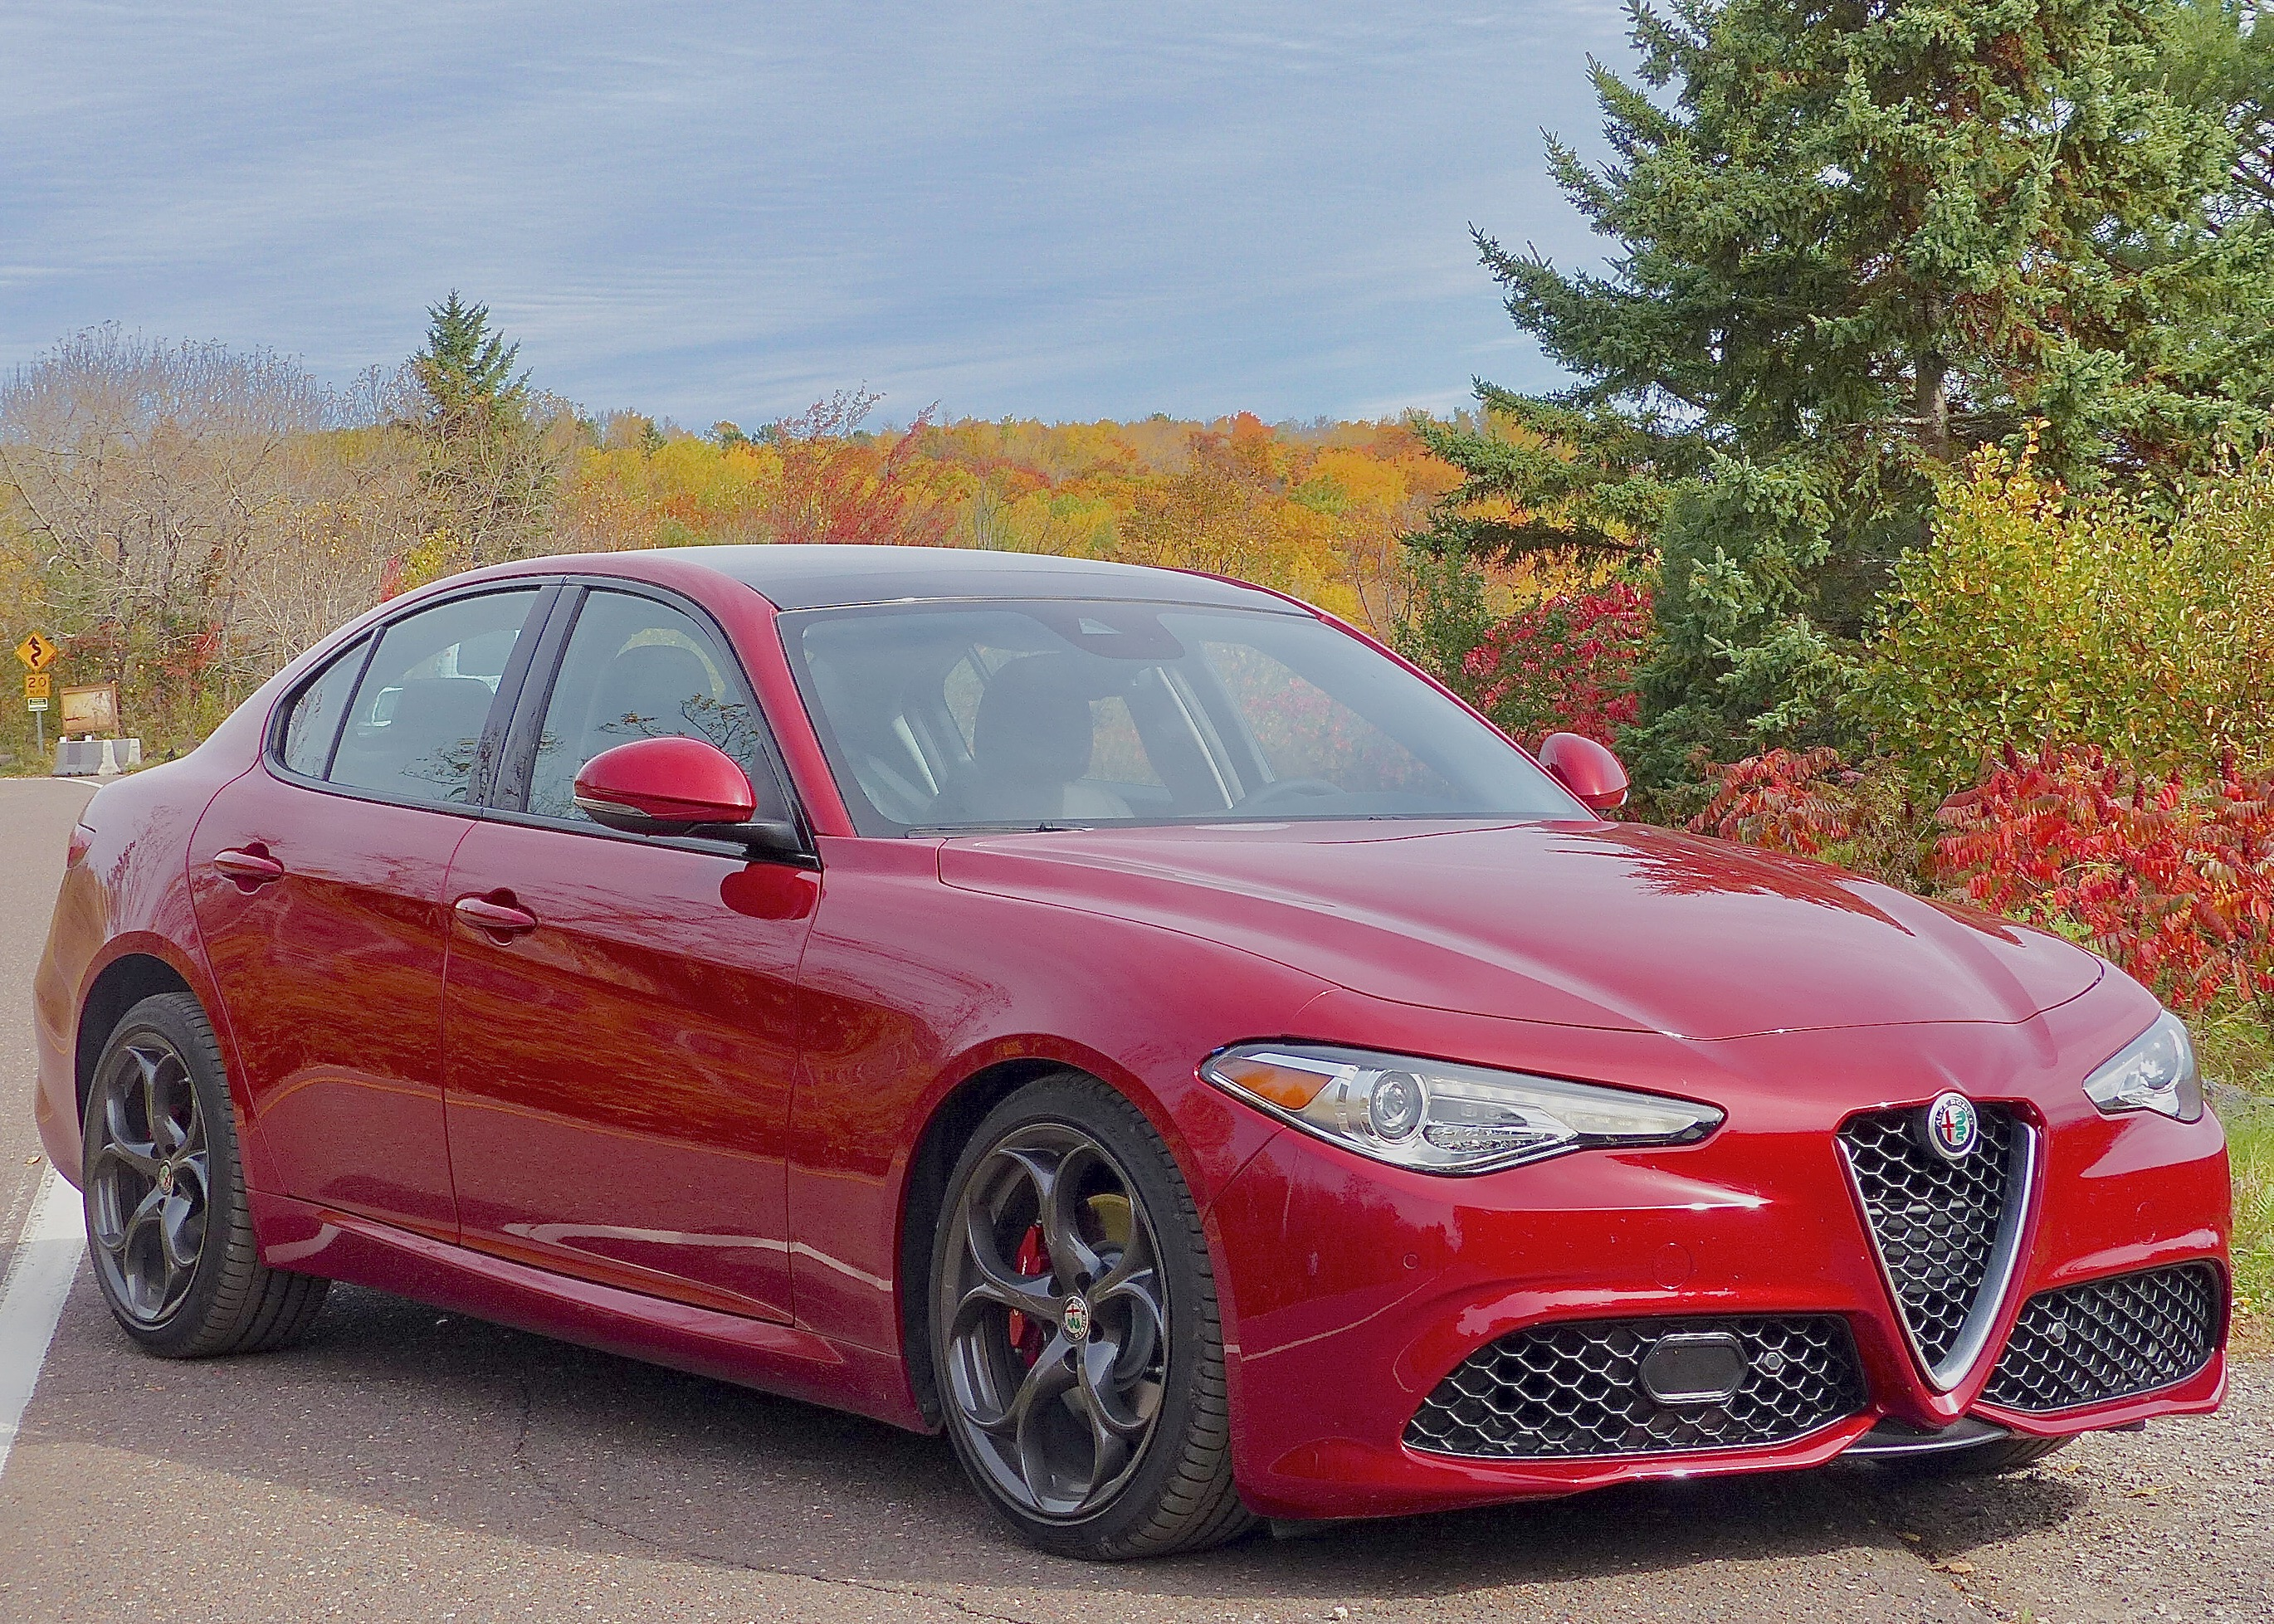 The Alfa Romeo Giulia TI matches its external beauty with potent performance and superb handling.